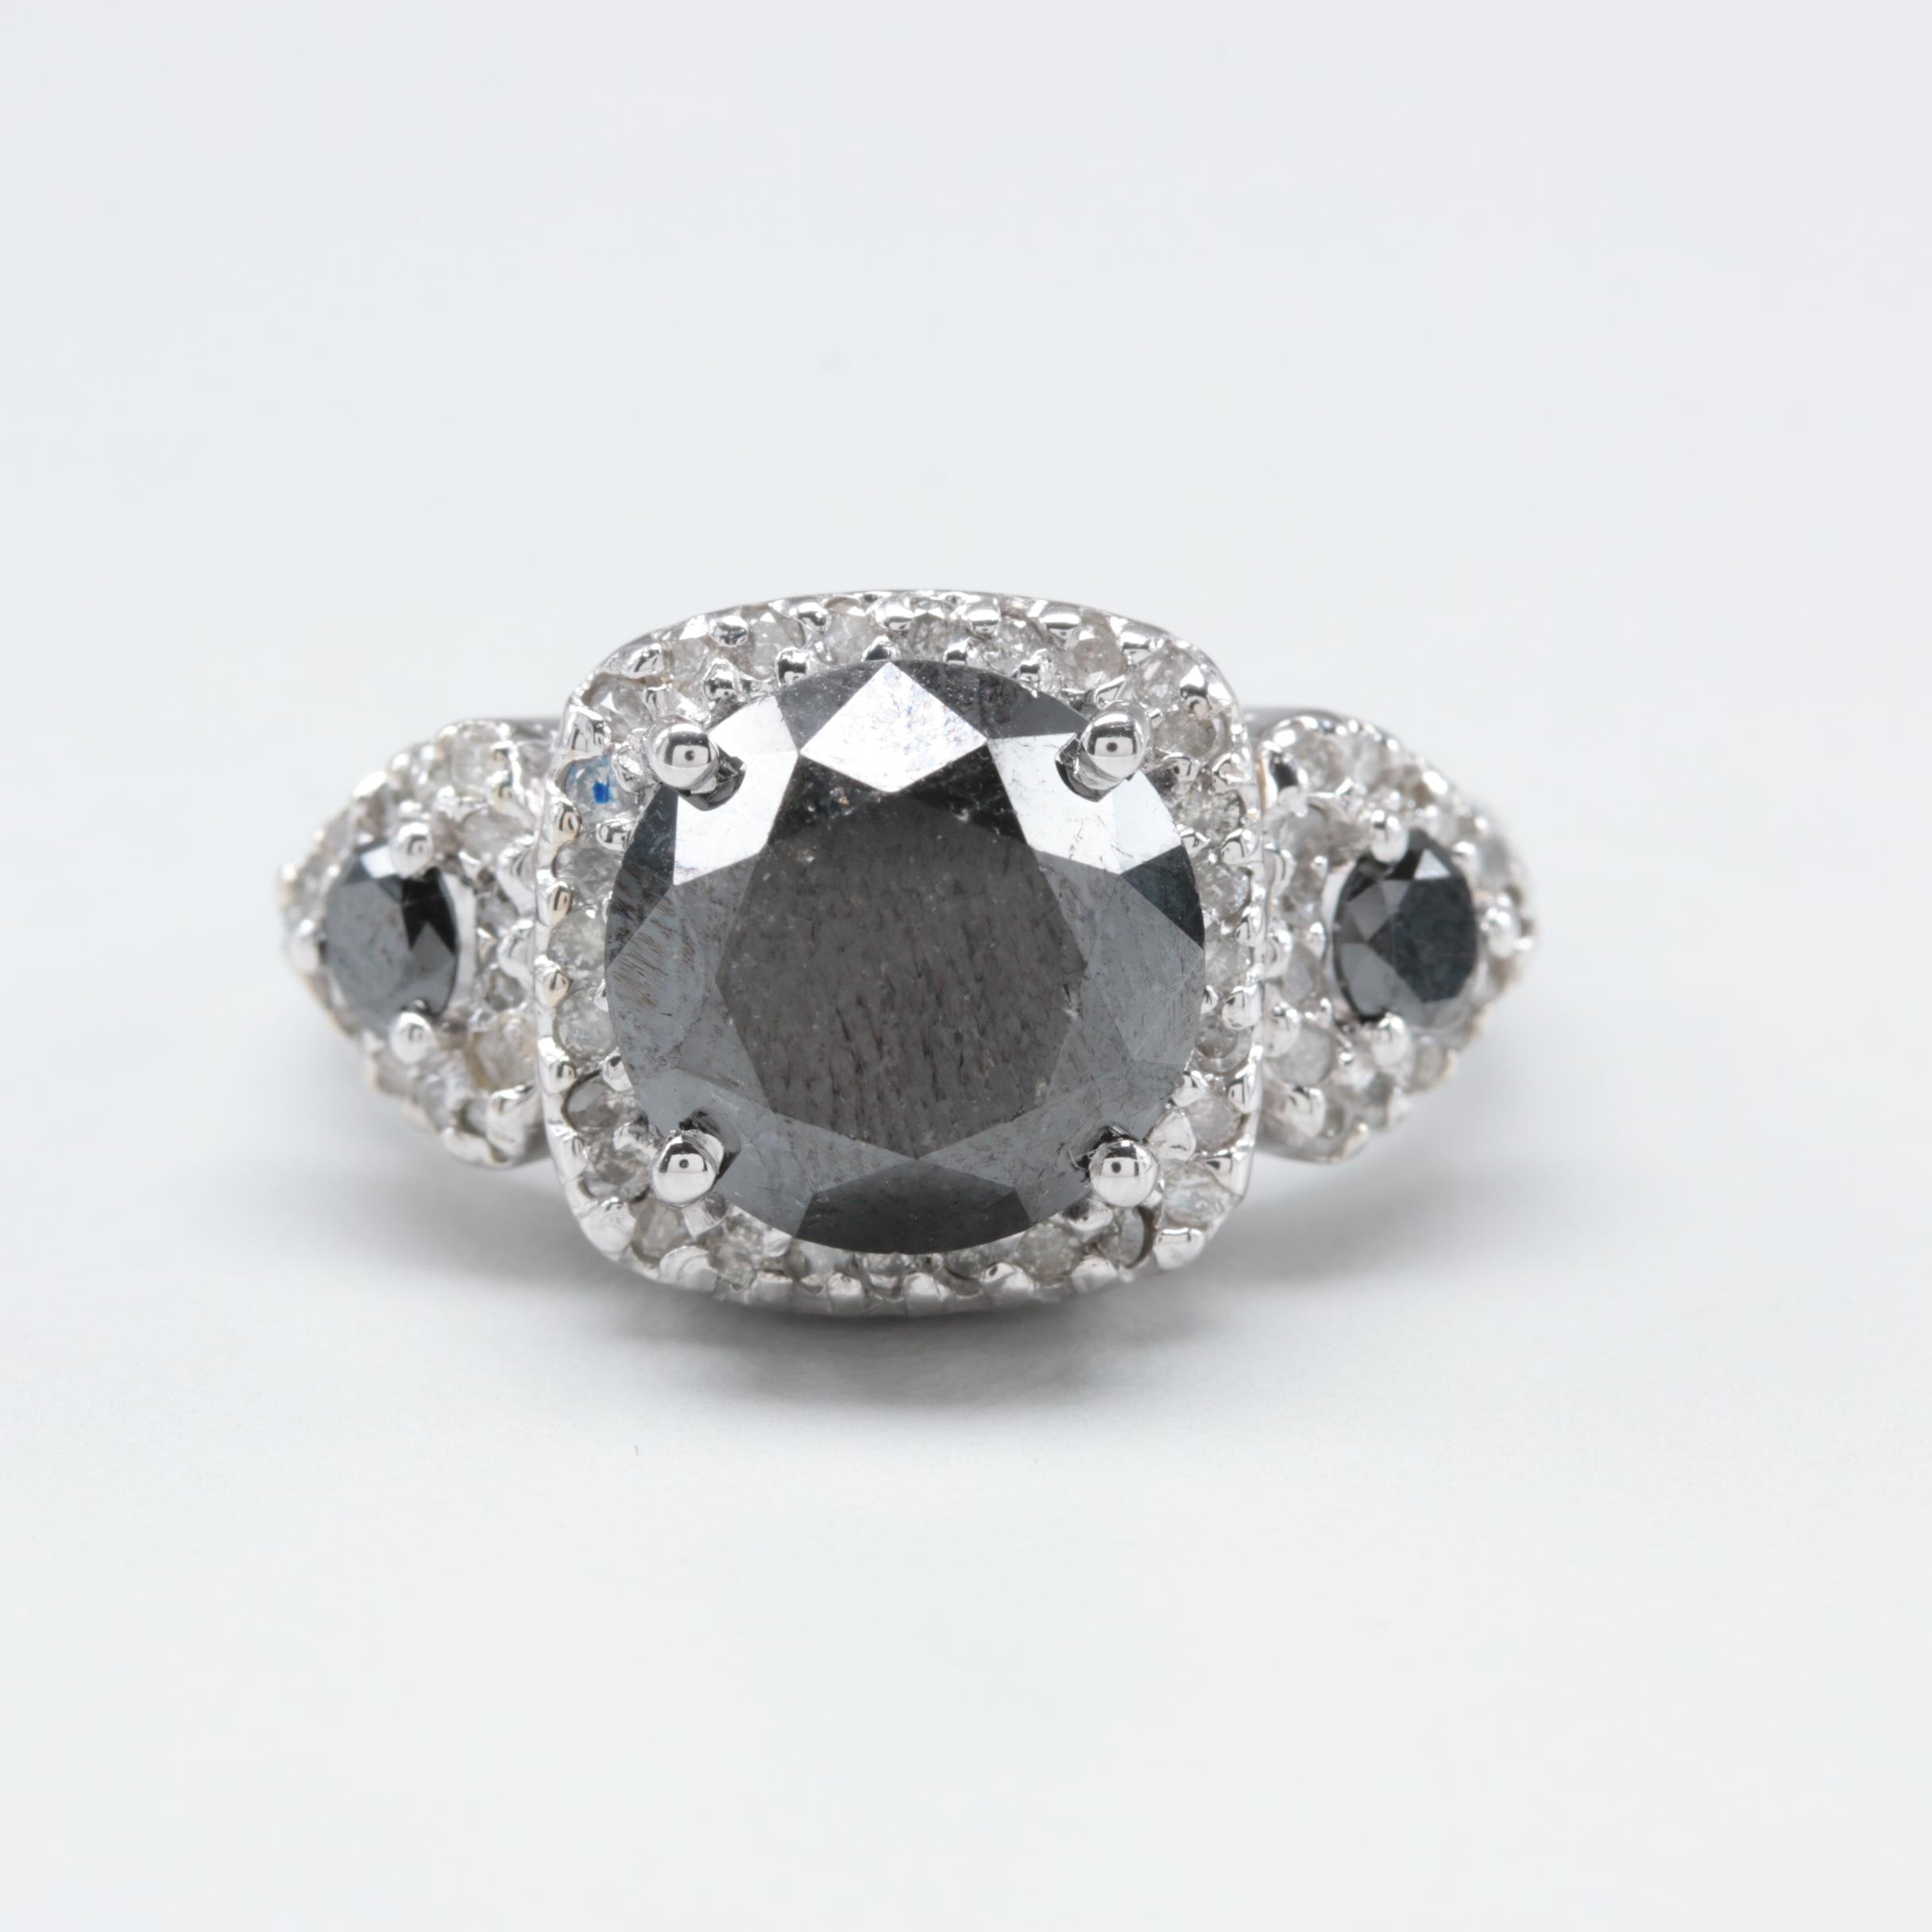 14K White Gold 6.25 CTW Diamond Ring Featuring Black Diamonds